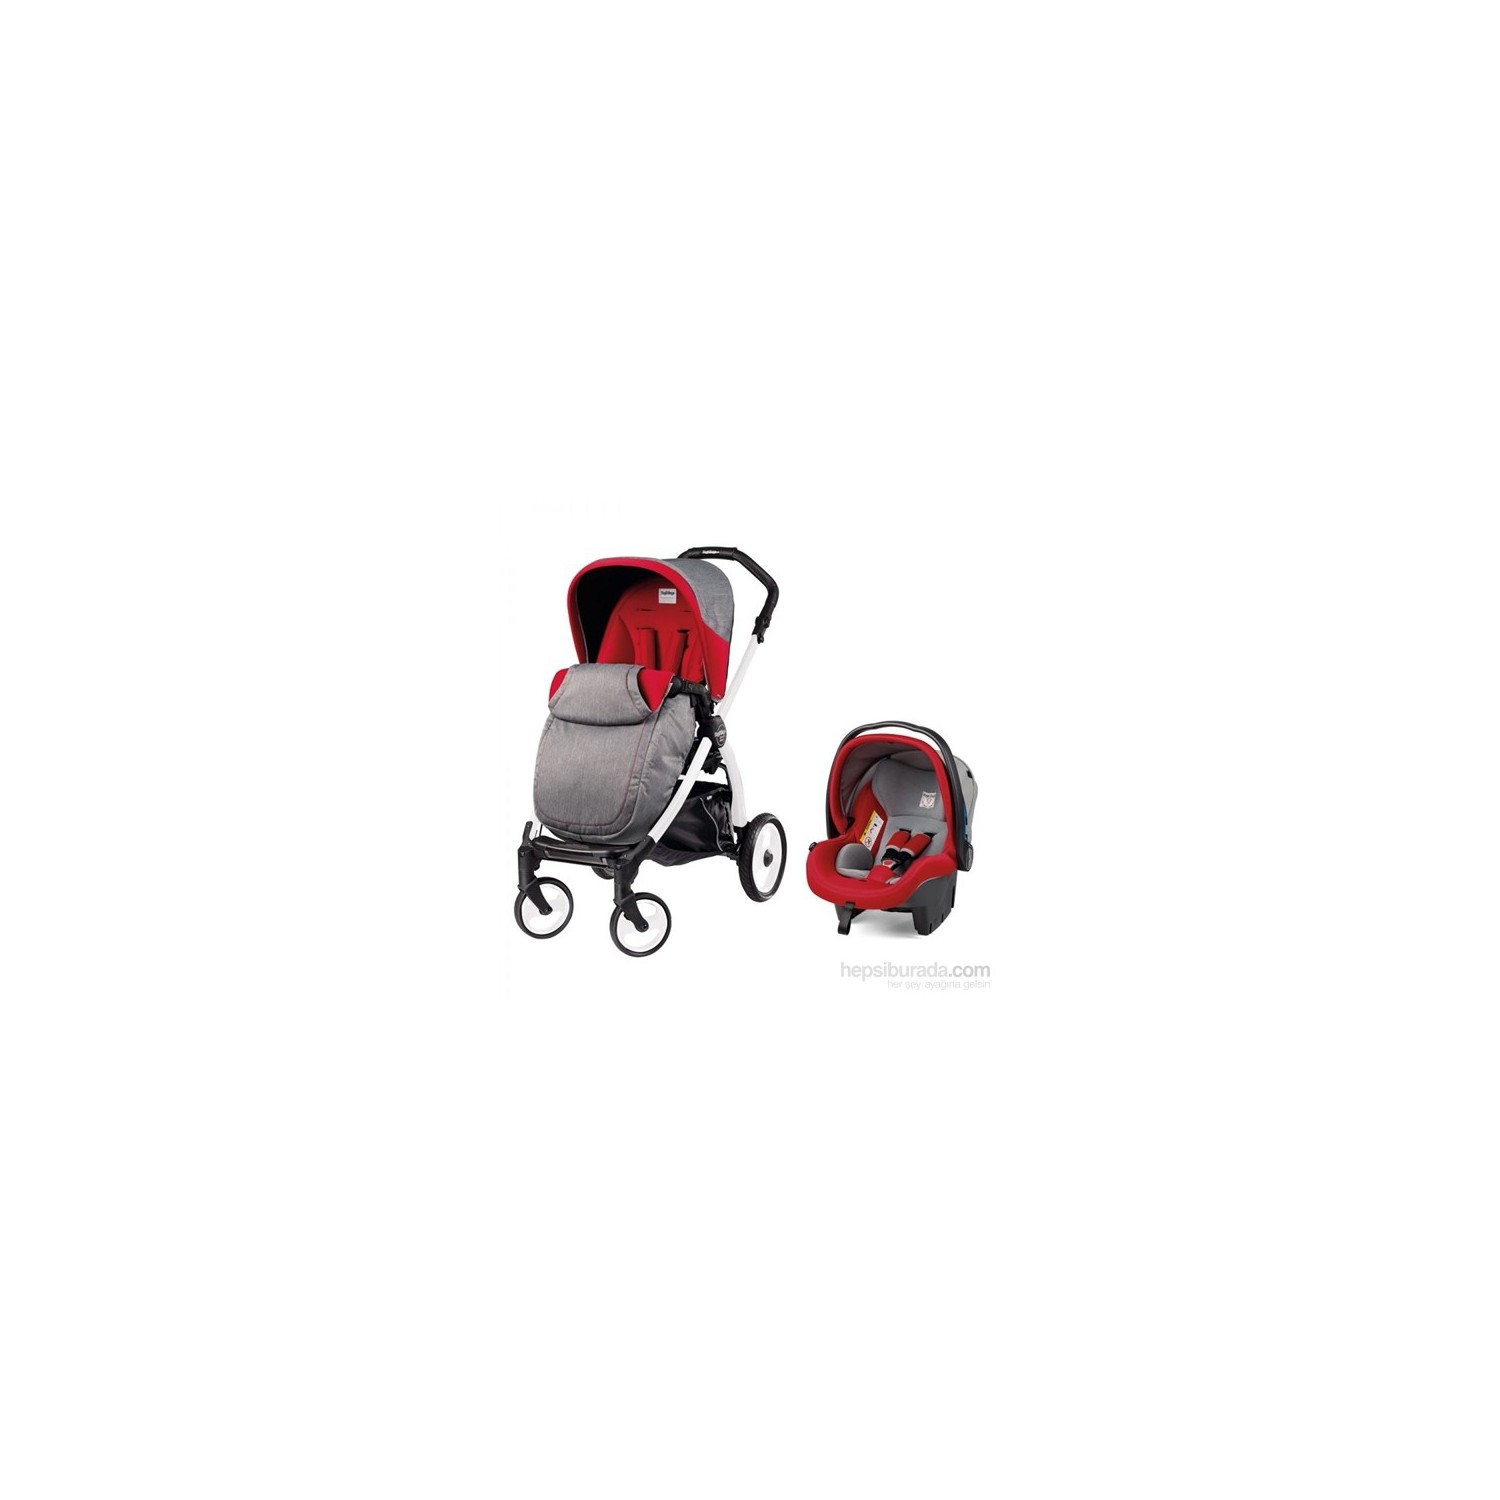 Peg Perego Book 51 Completo Yorum Peg Perego Book Plus 51 Pop Up Completo Travel Sistem Bebek